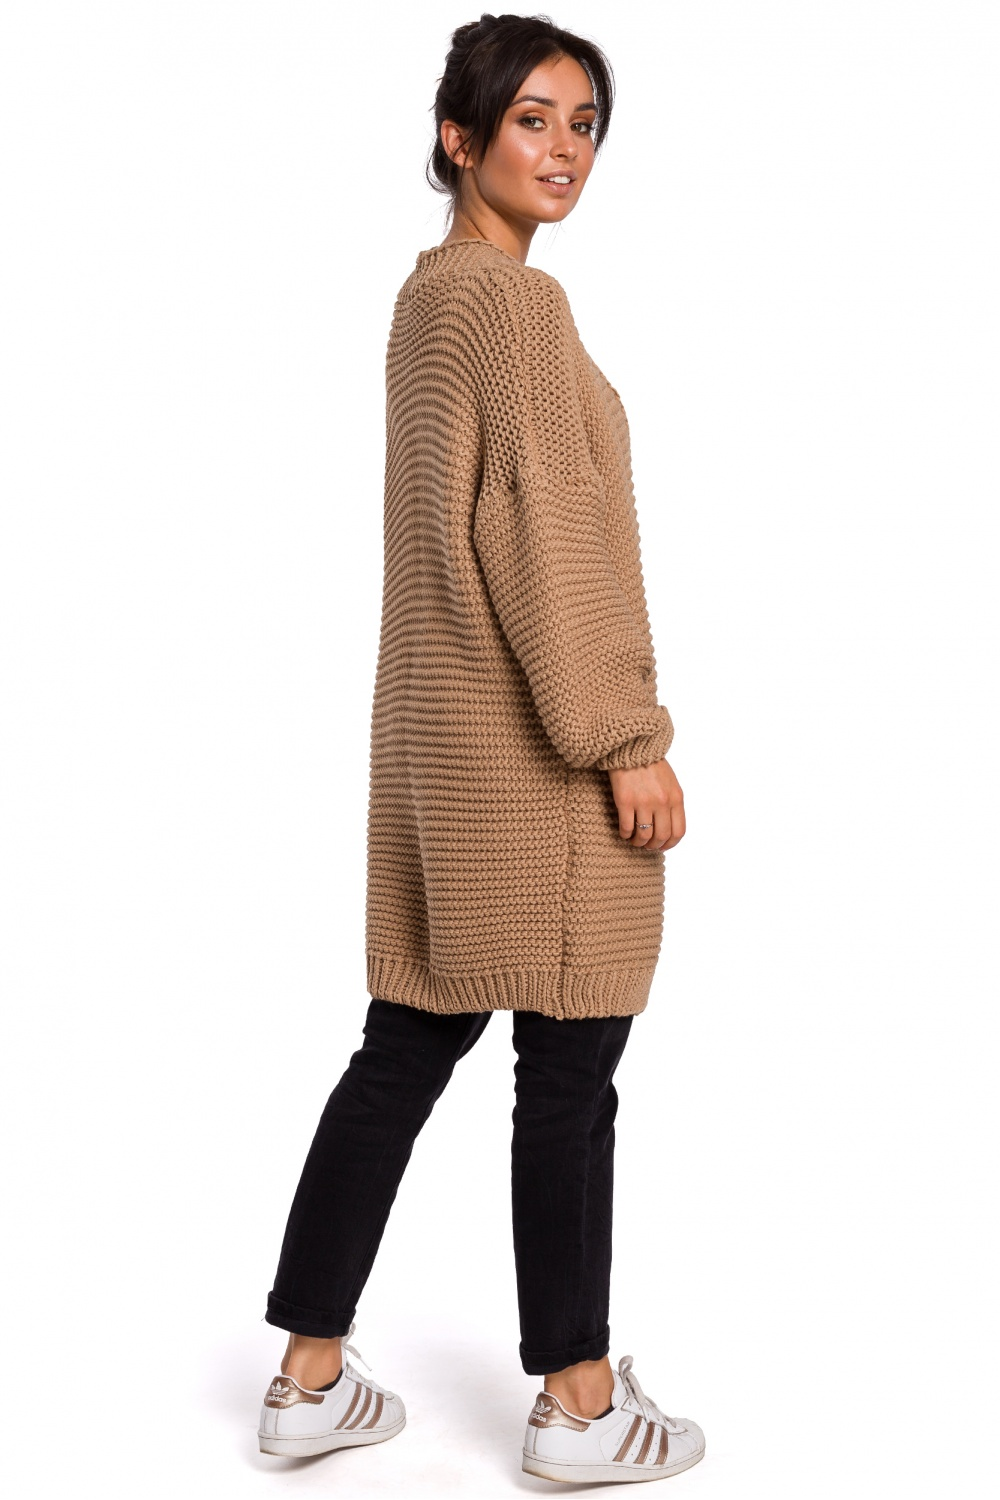 Cardigan model 136426 BE Knit